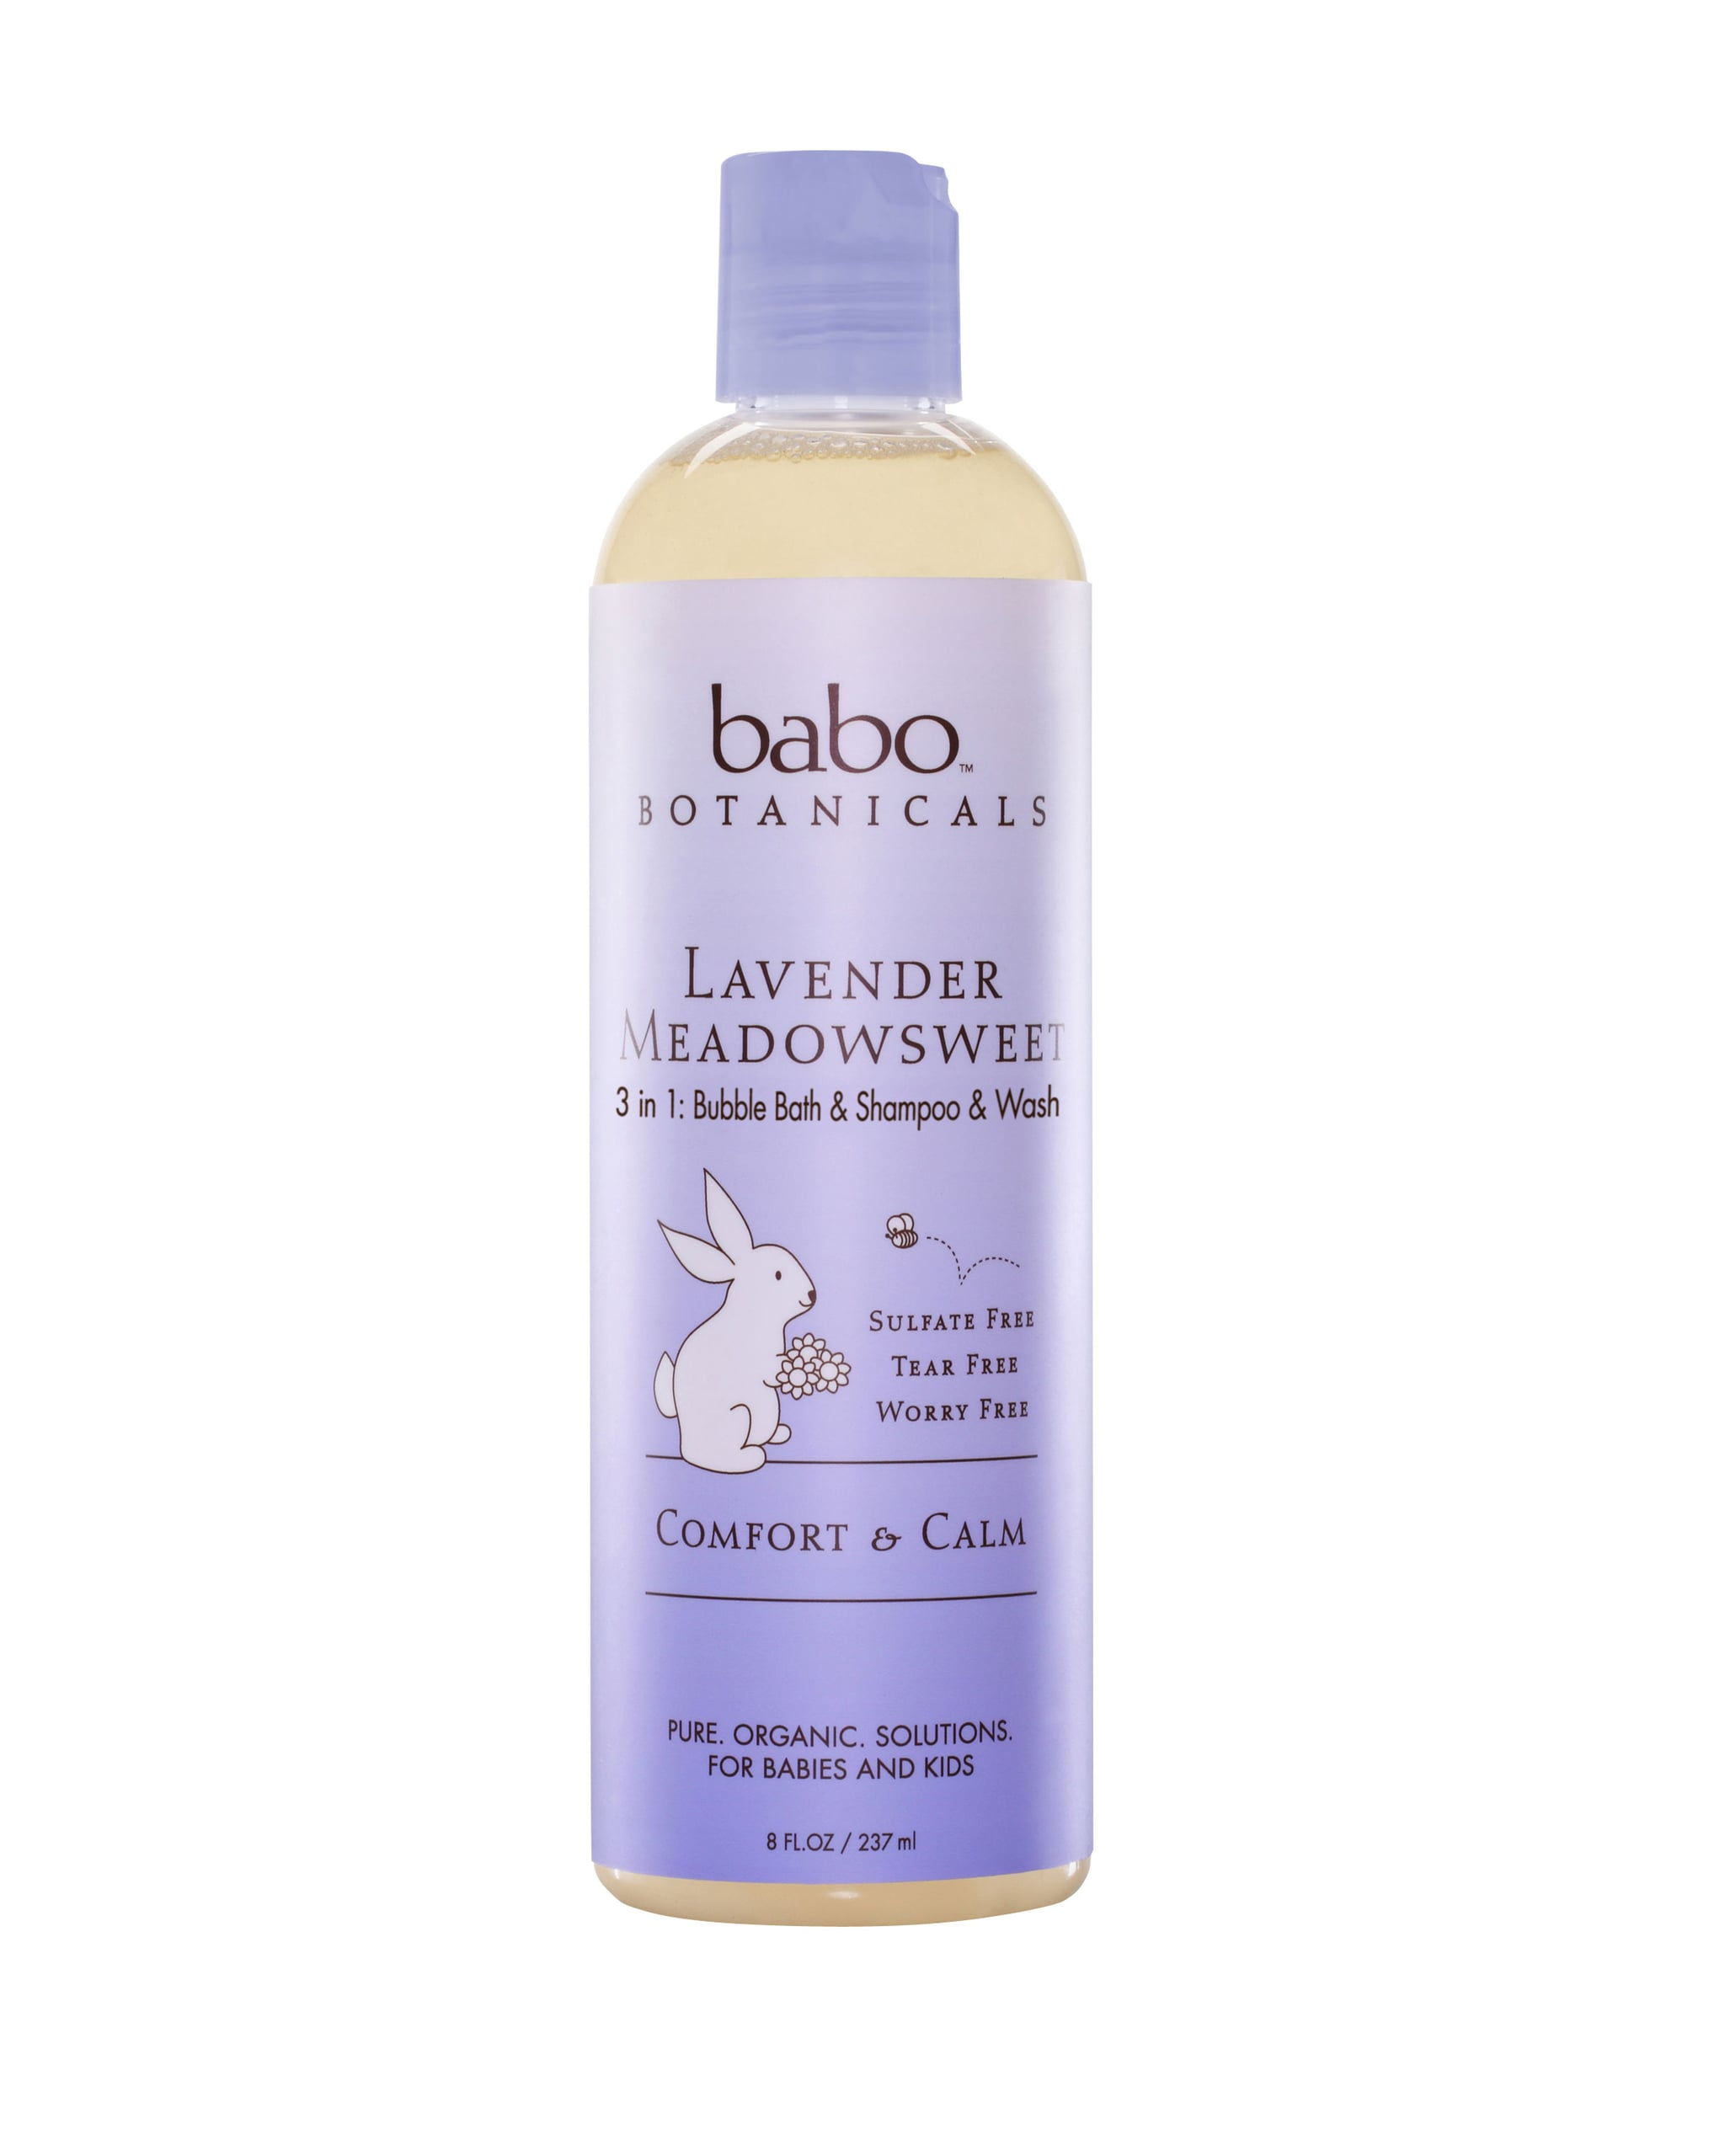 Babo Botanicals Lavender Meadowsweet 3 in 1 Bubble Bath Wash